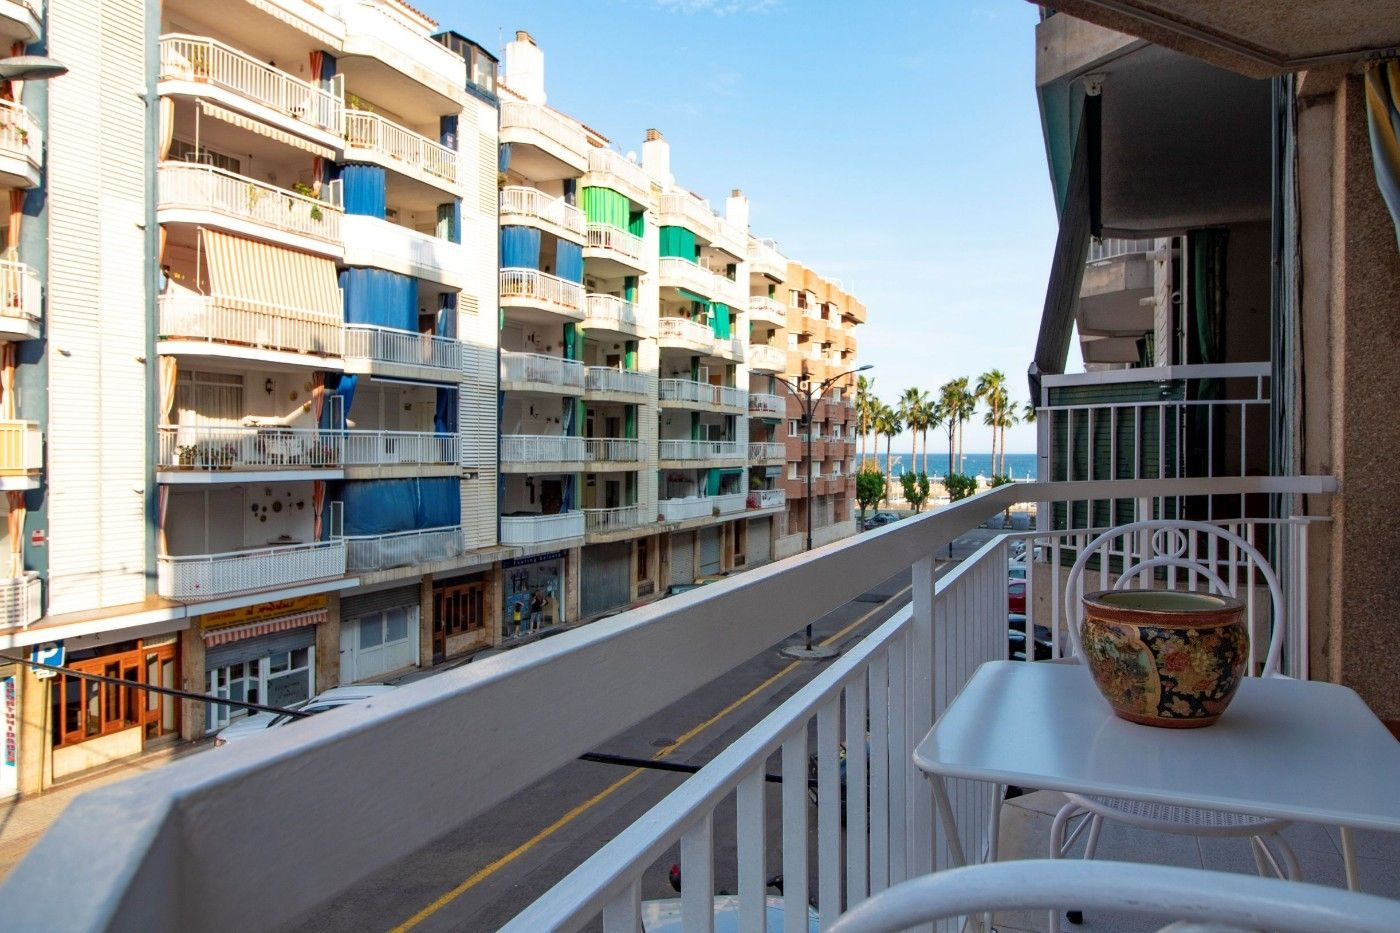 Lloguer Apartament en Calle doctor fleming, 10. Perfect for students